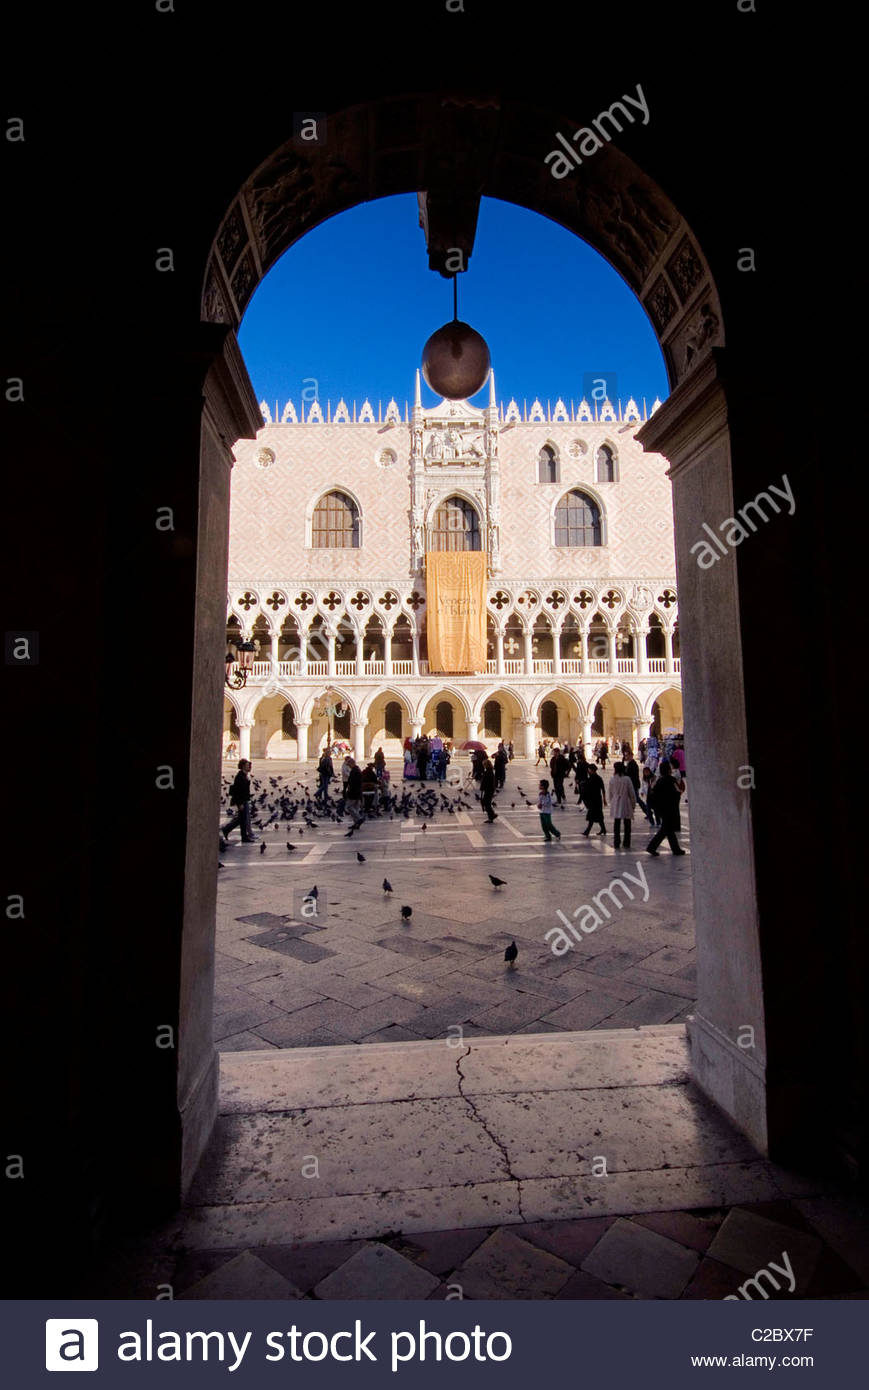 Palazzo Ducale in Venice Italy. - Stock Image